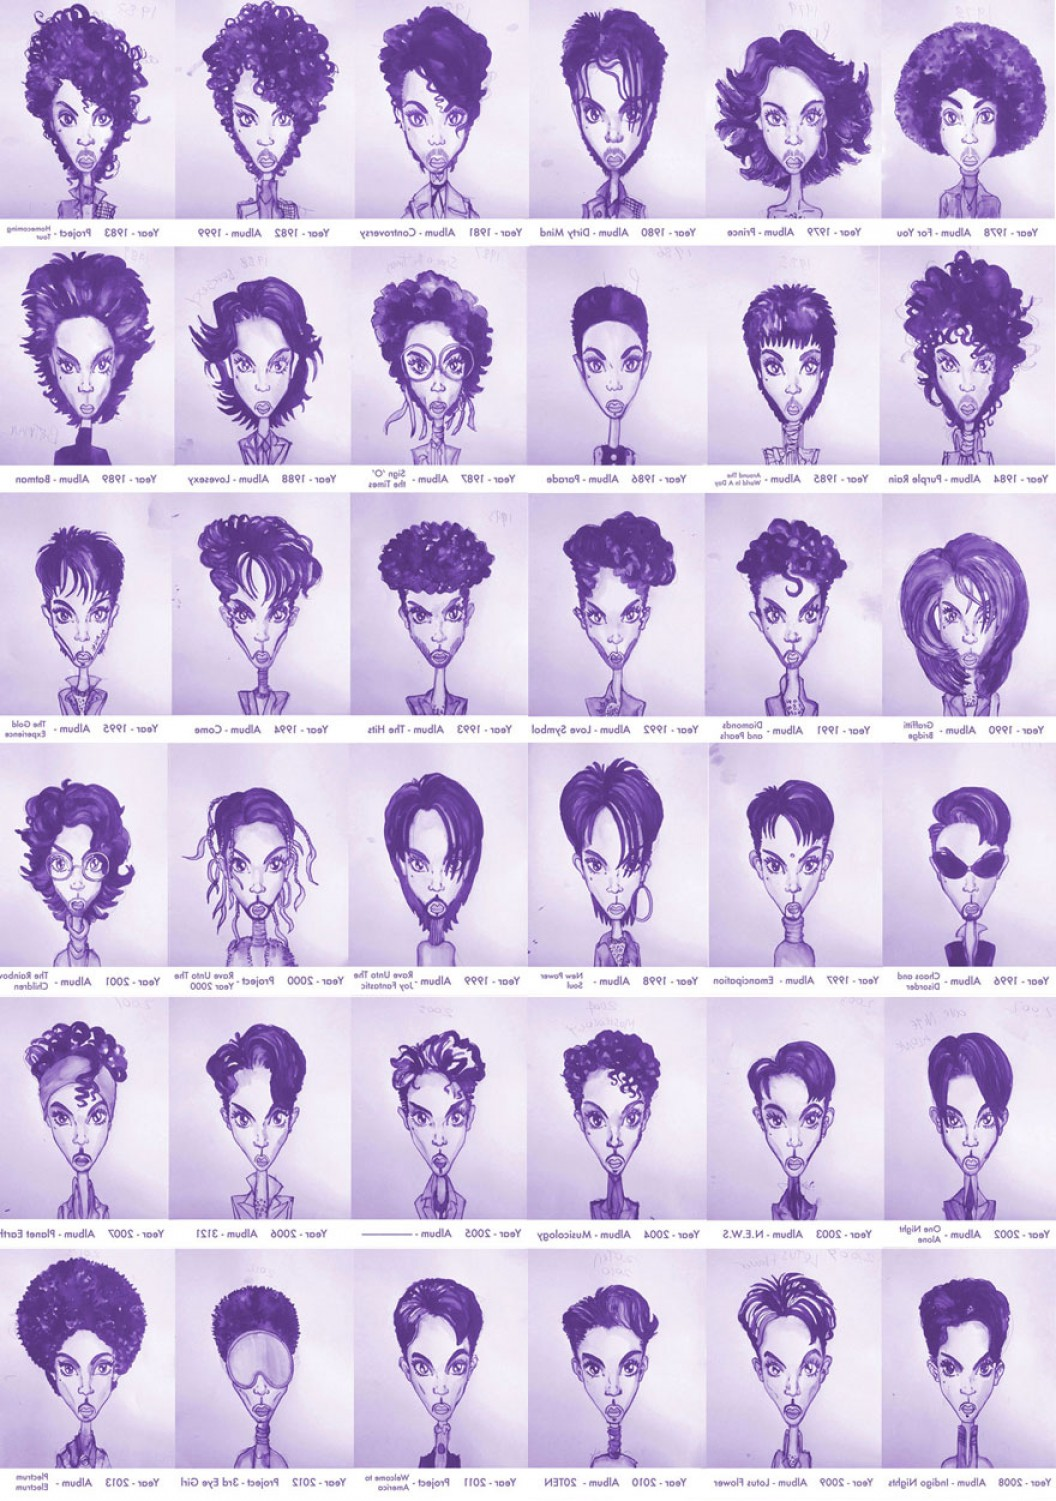 Singer Prince Symbol Vector: Prince Hair Styles Chronology Chart Rogers Nelson Gary Card